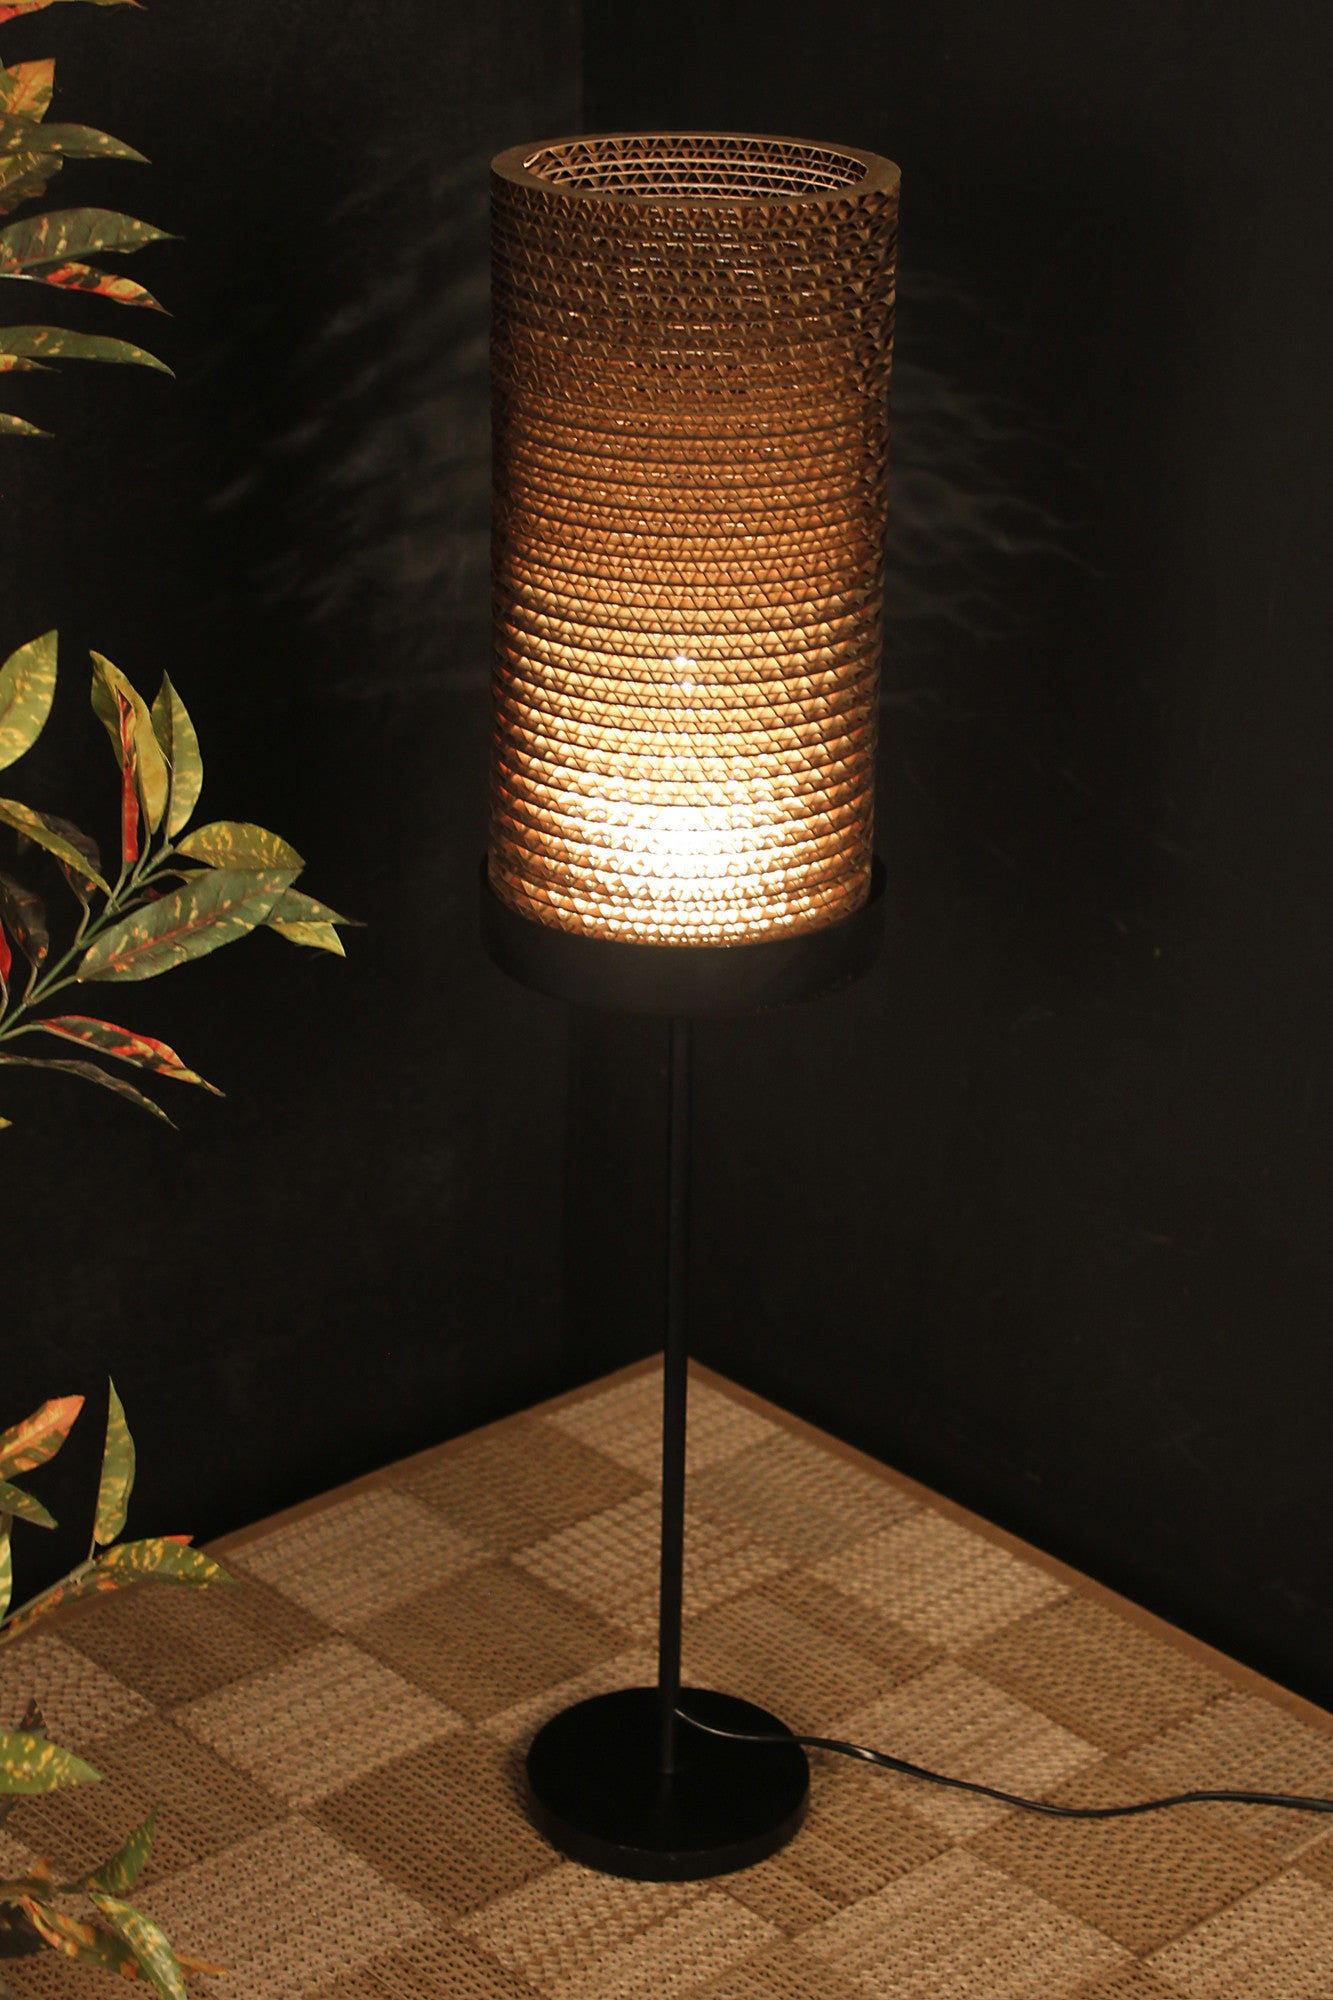 Lissom Table Lamp - Table Lamp - Sylvn Studio